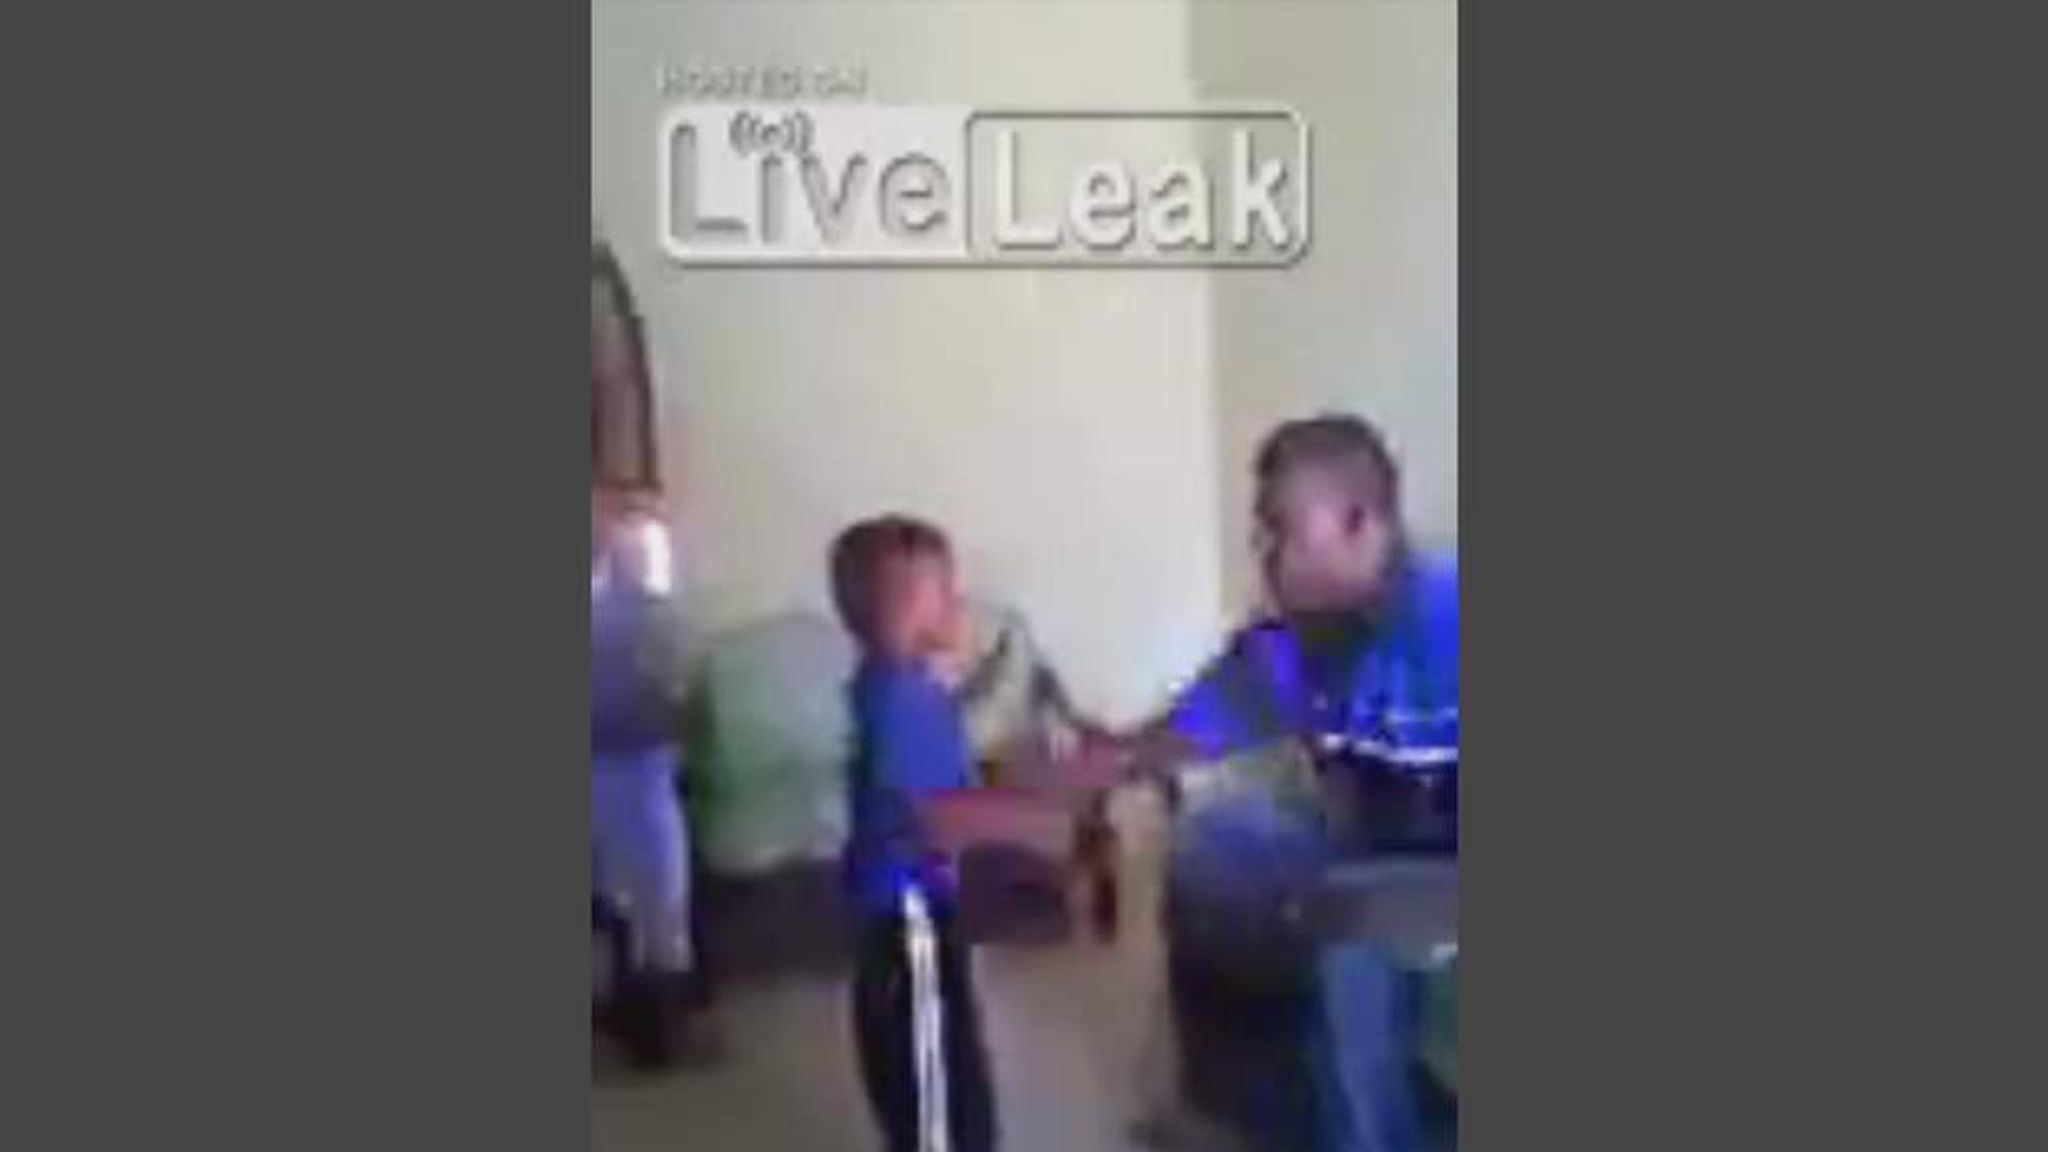 Facebook Abuse Video Angers Users